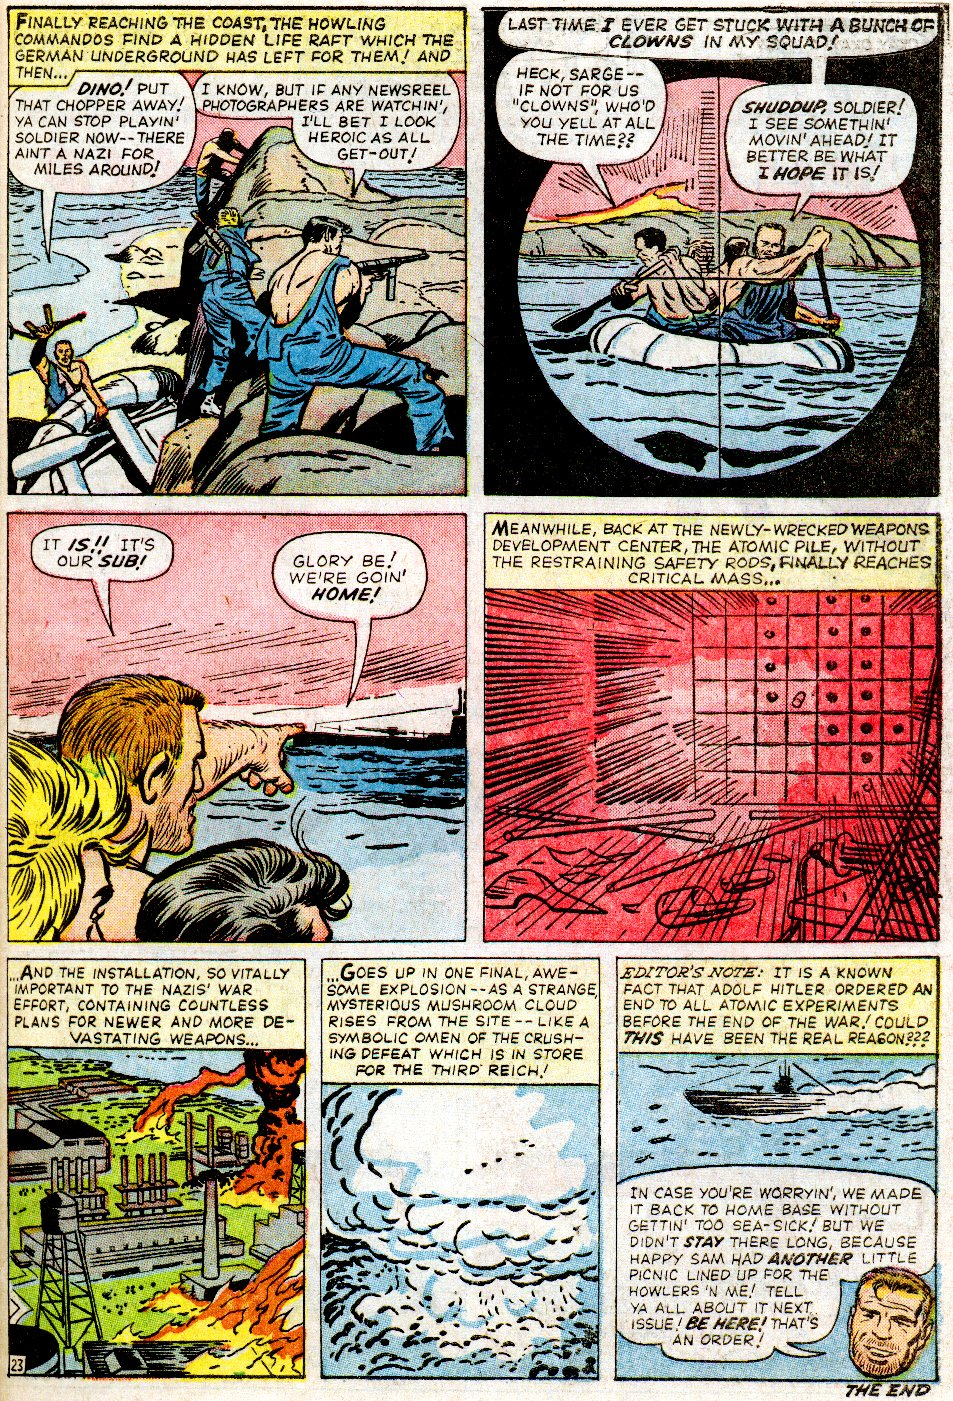 Read online Sgt. Fury comic -  Issue #2 - 31